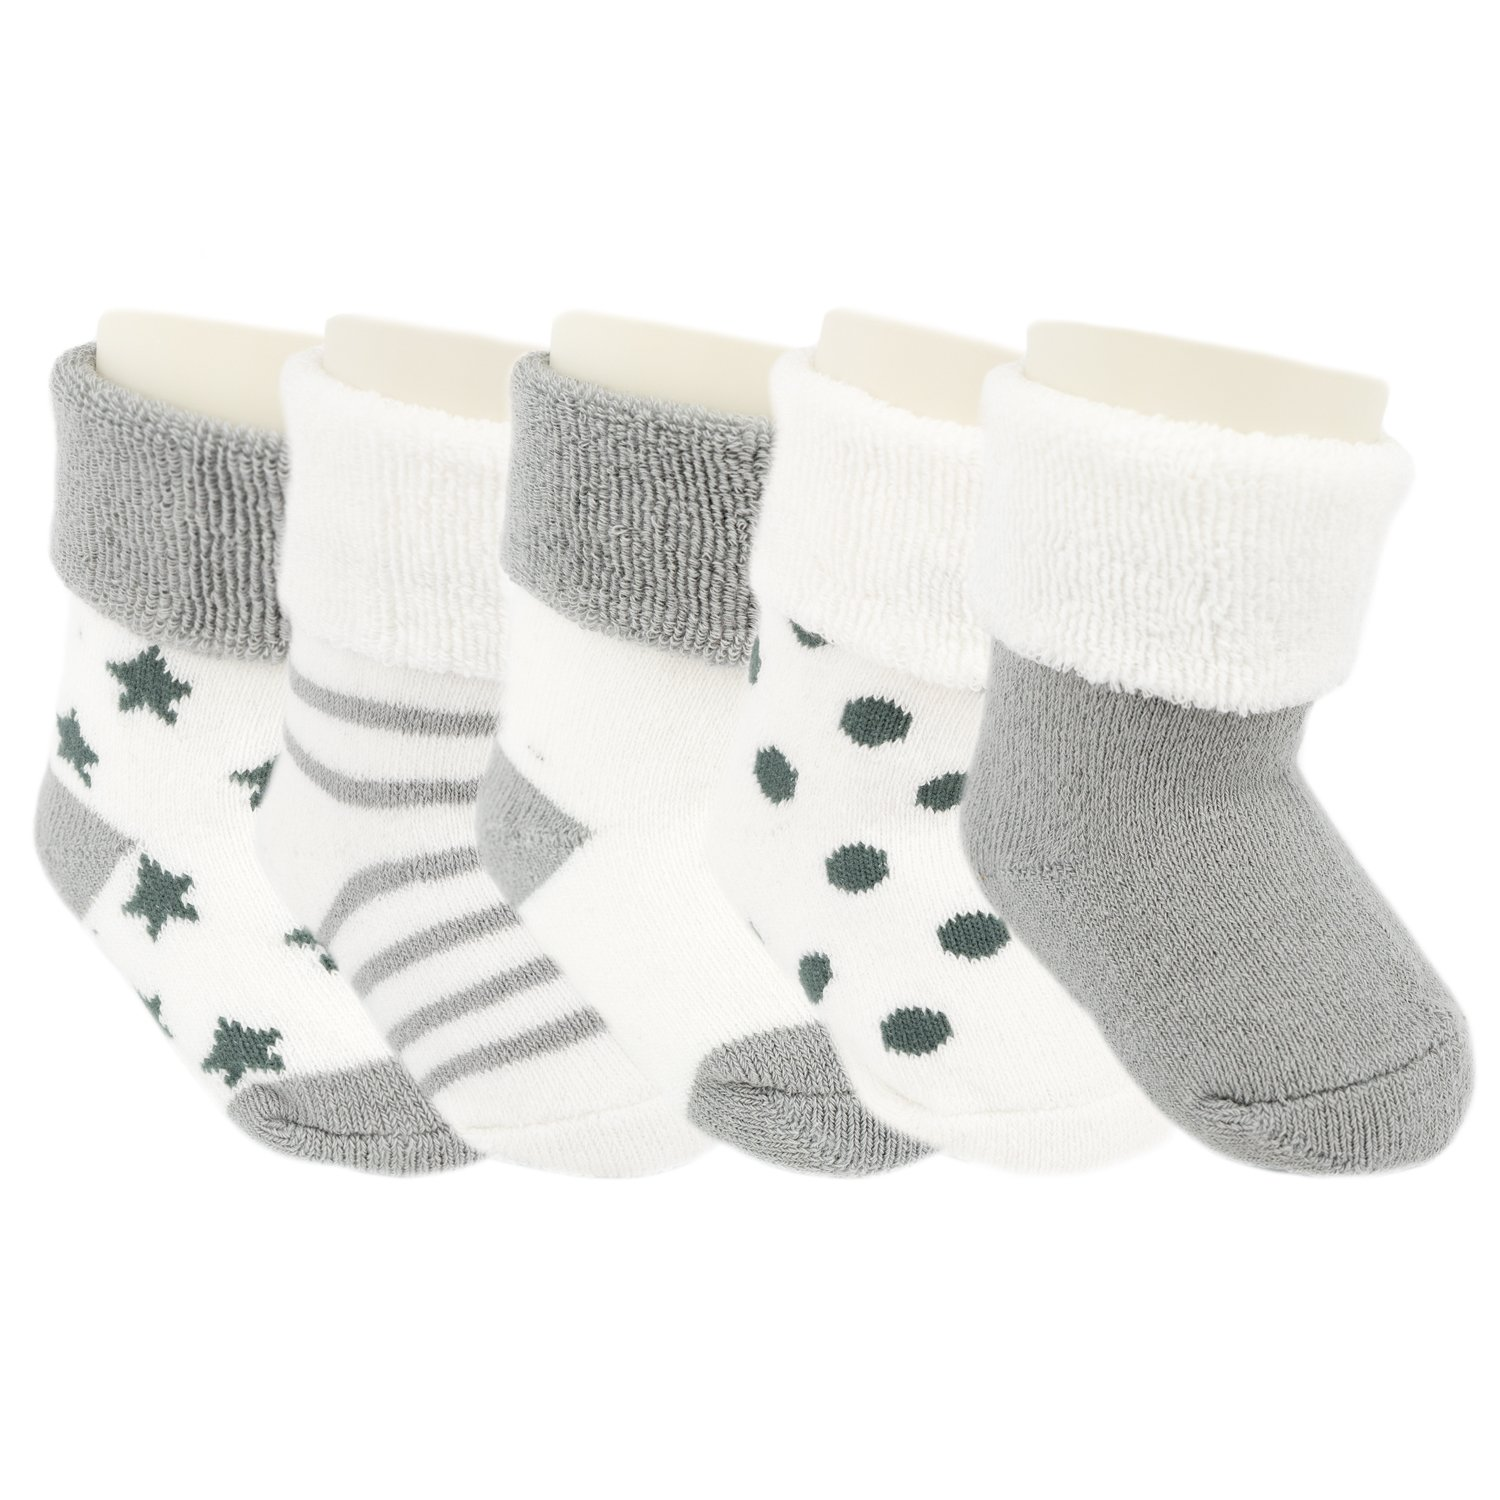 Ateid Baby Toddler Ankle Thick Socks Winter Socks Pack of 5